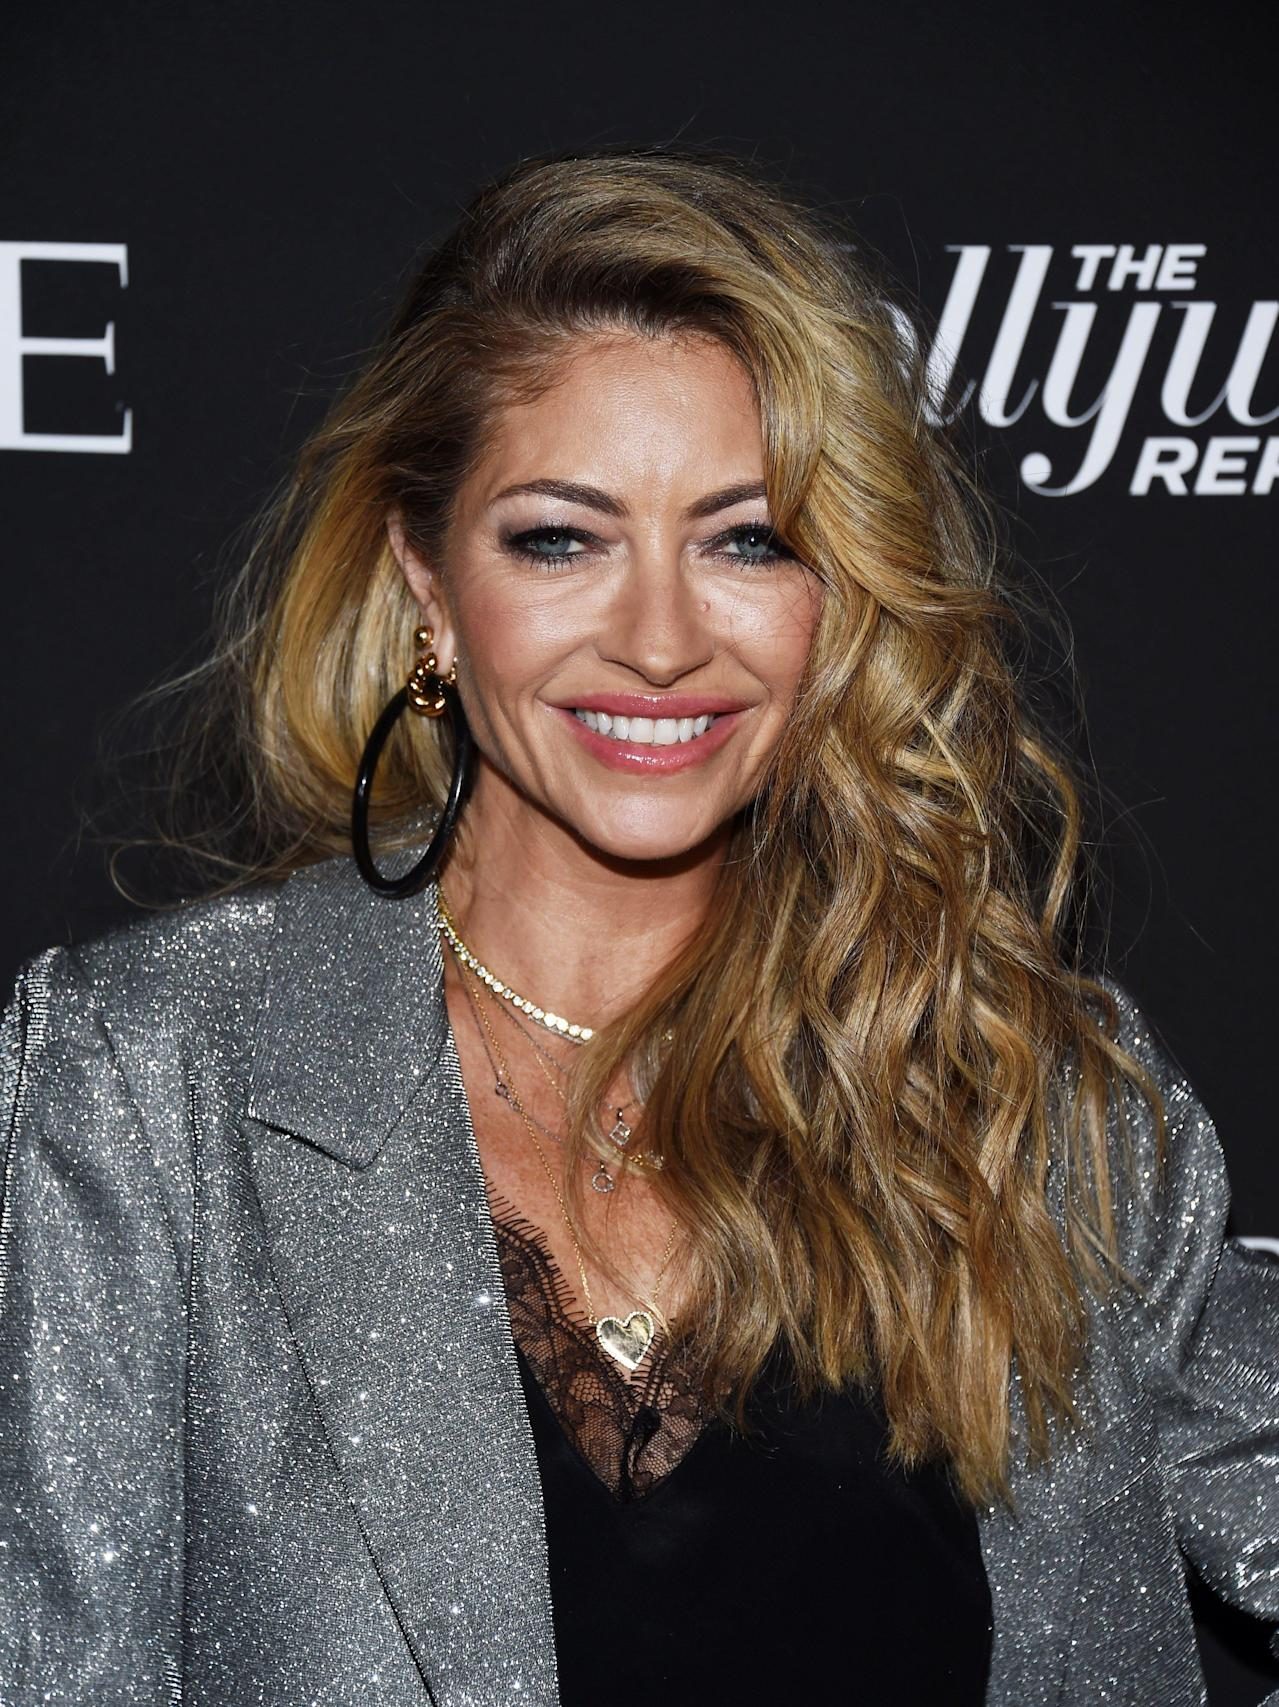 Rebecca Gayheart Says She Didnt Want to Live After Her